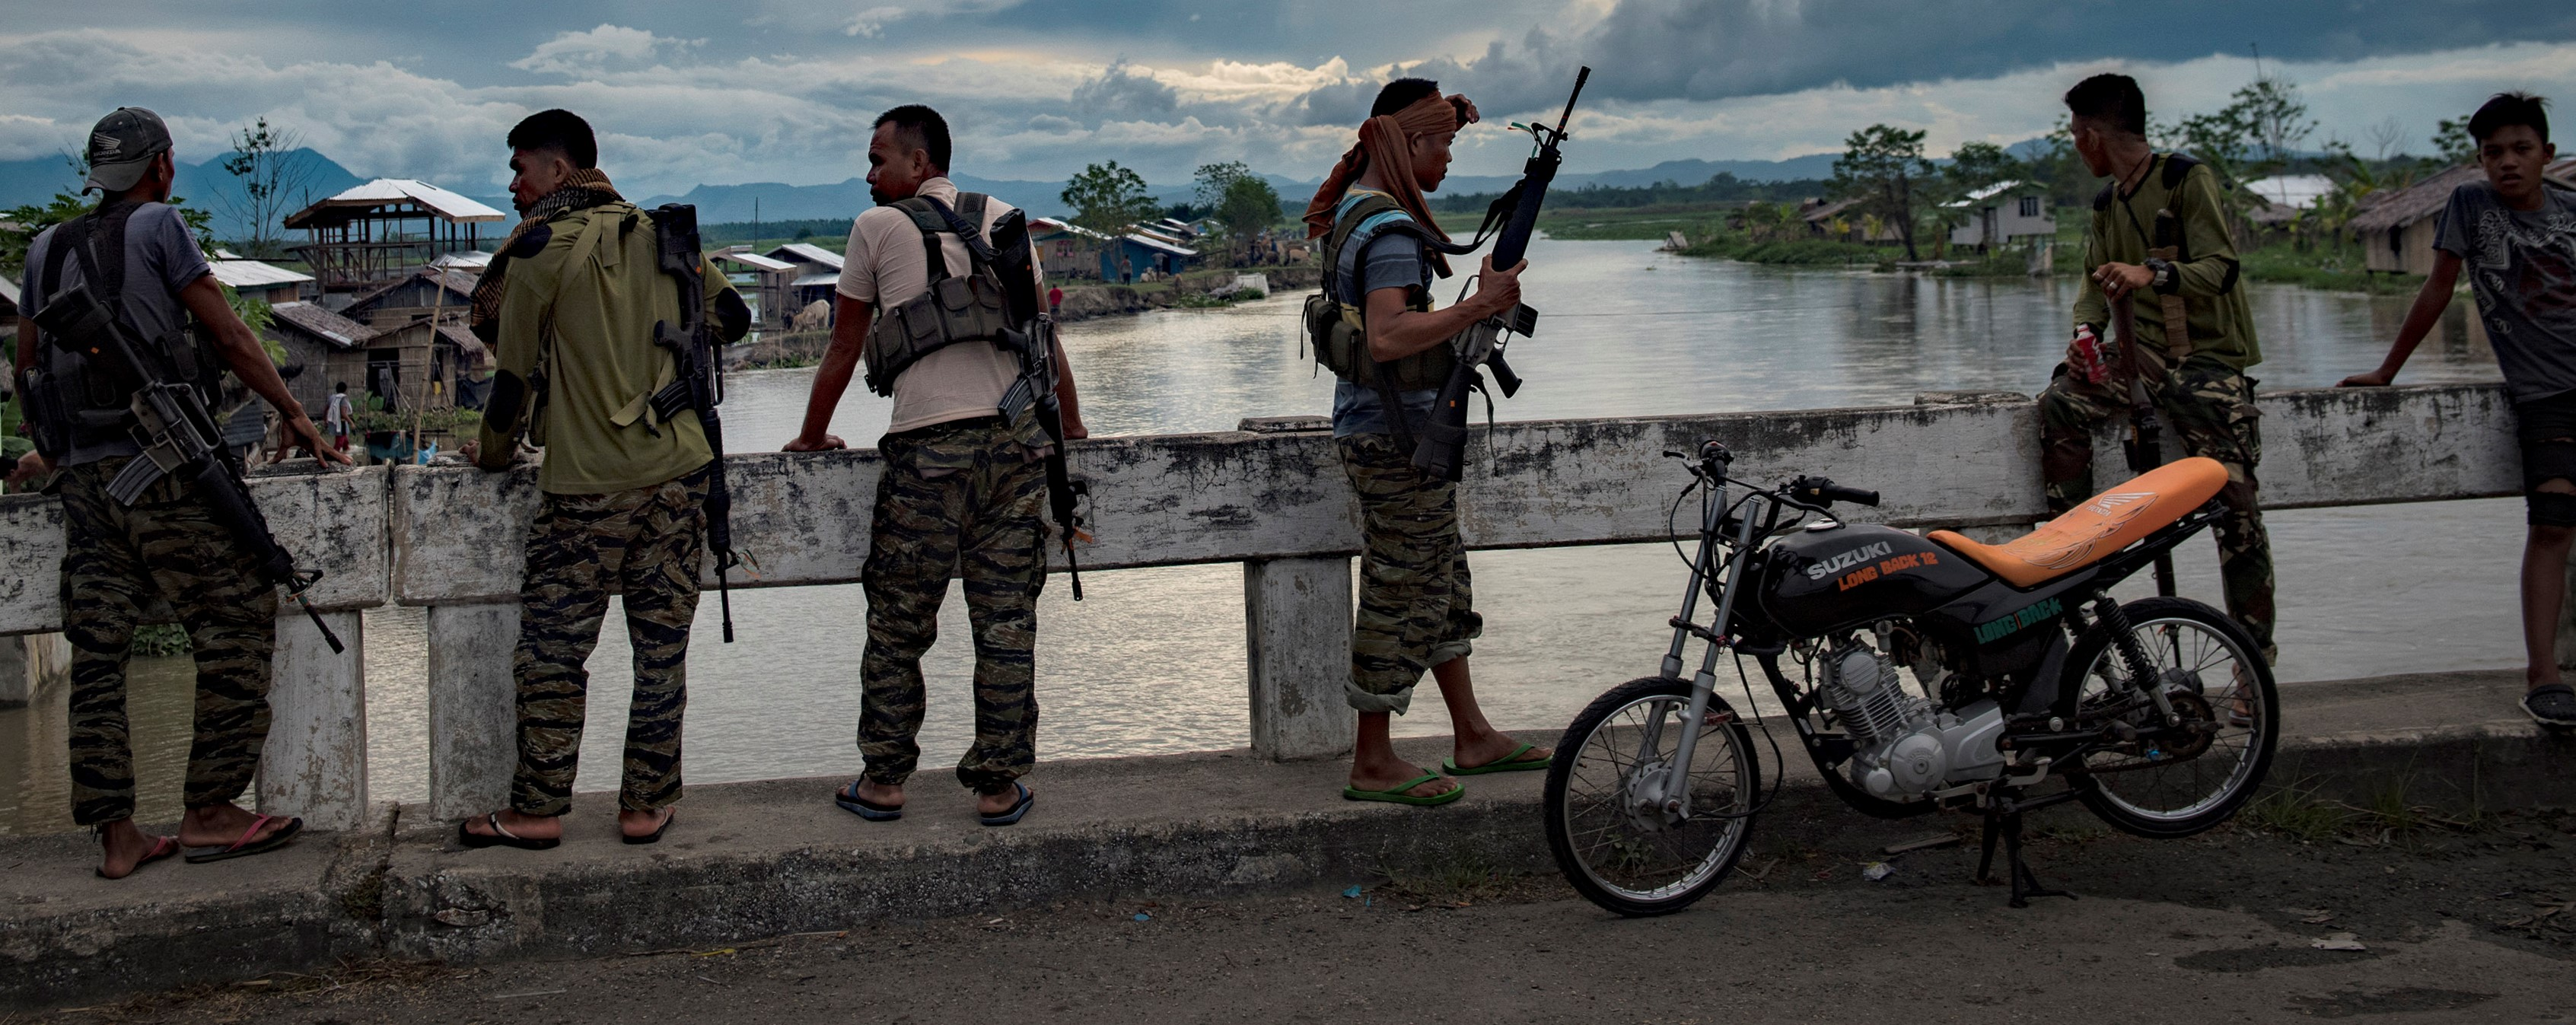 Moro Islamic Liberation Front Fighters guarding a bridge, Maguindanao Province, Mindanao, the Philippines, August 2017 (Photo: Getty Images/Jes Aznar)